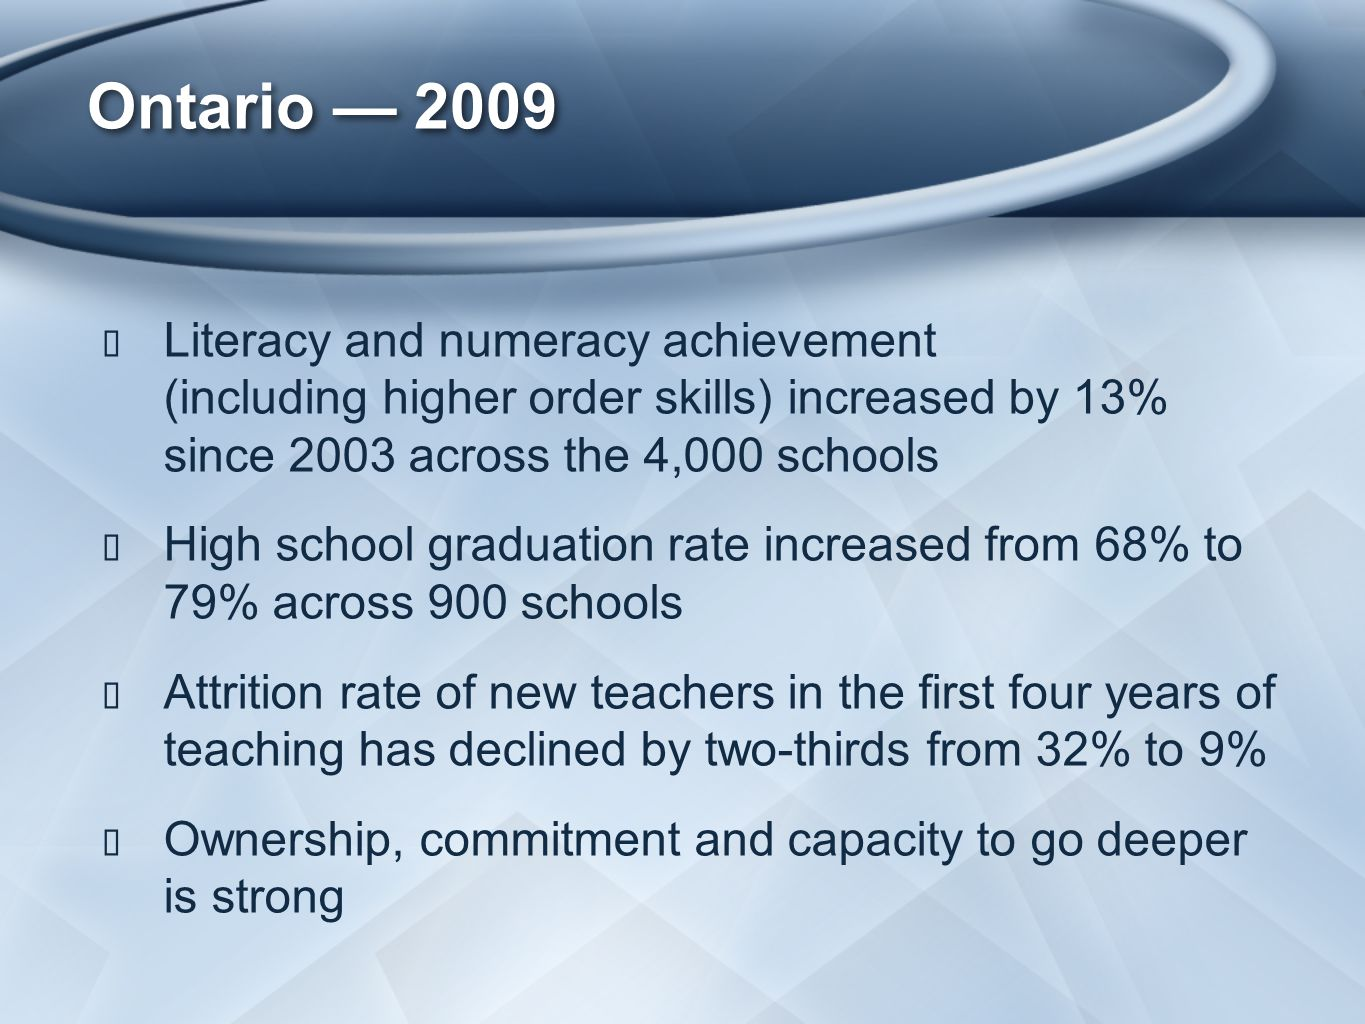 Ontario — 2009 ★ Literacy and numeracy achievement (including higher order skills) increased by 13% since 2003 across the 4,000 schools ★ High school graduation rate increased from 68% to 79% across 900 schools ★ Attrition rate of new teachers in the first four years of teaching has declined by two-thirds from 32% to 9% ★ Ownership, commitment and capacity to go deeper is strong